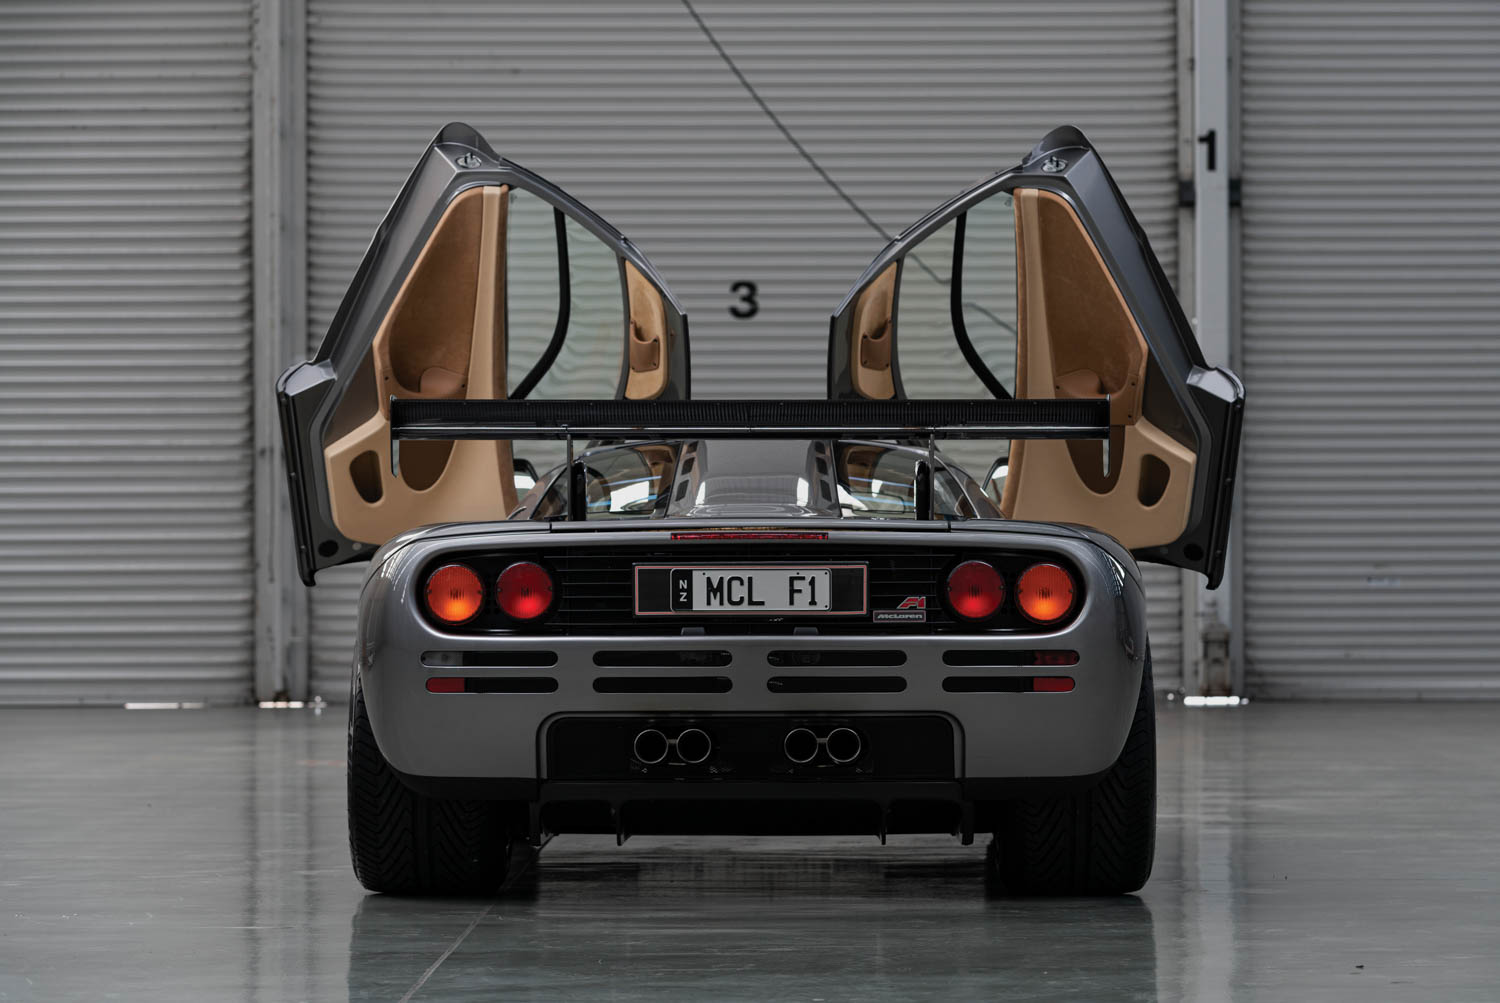 1994 McLaren F1 'LM-Specification' rear